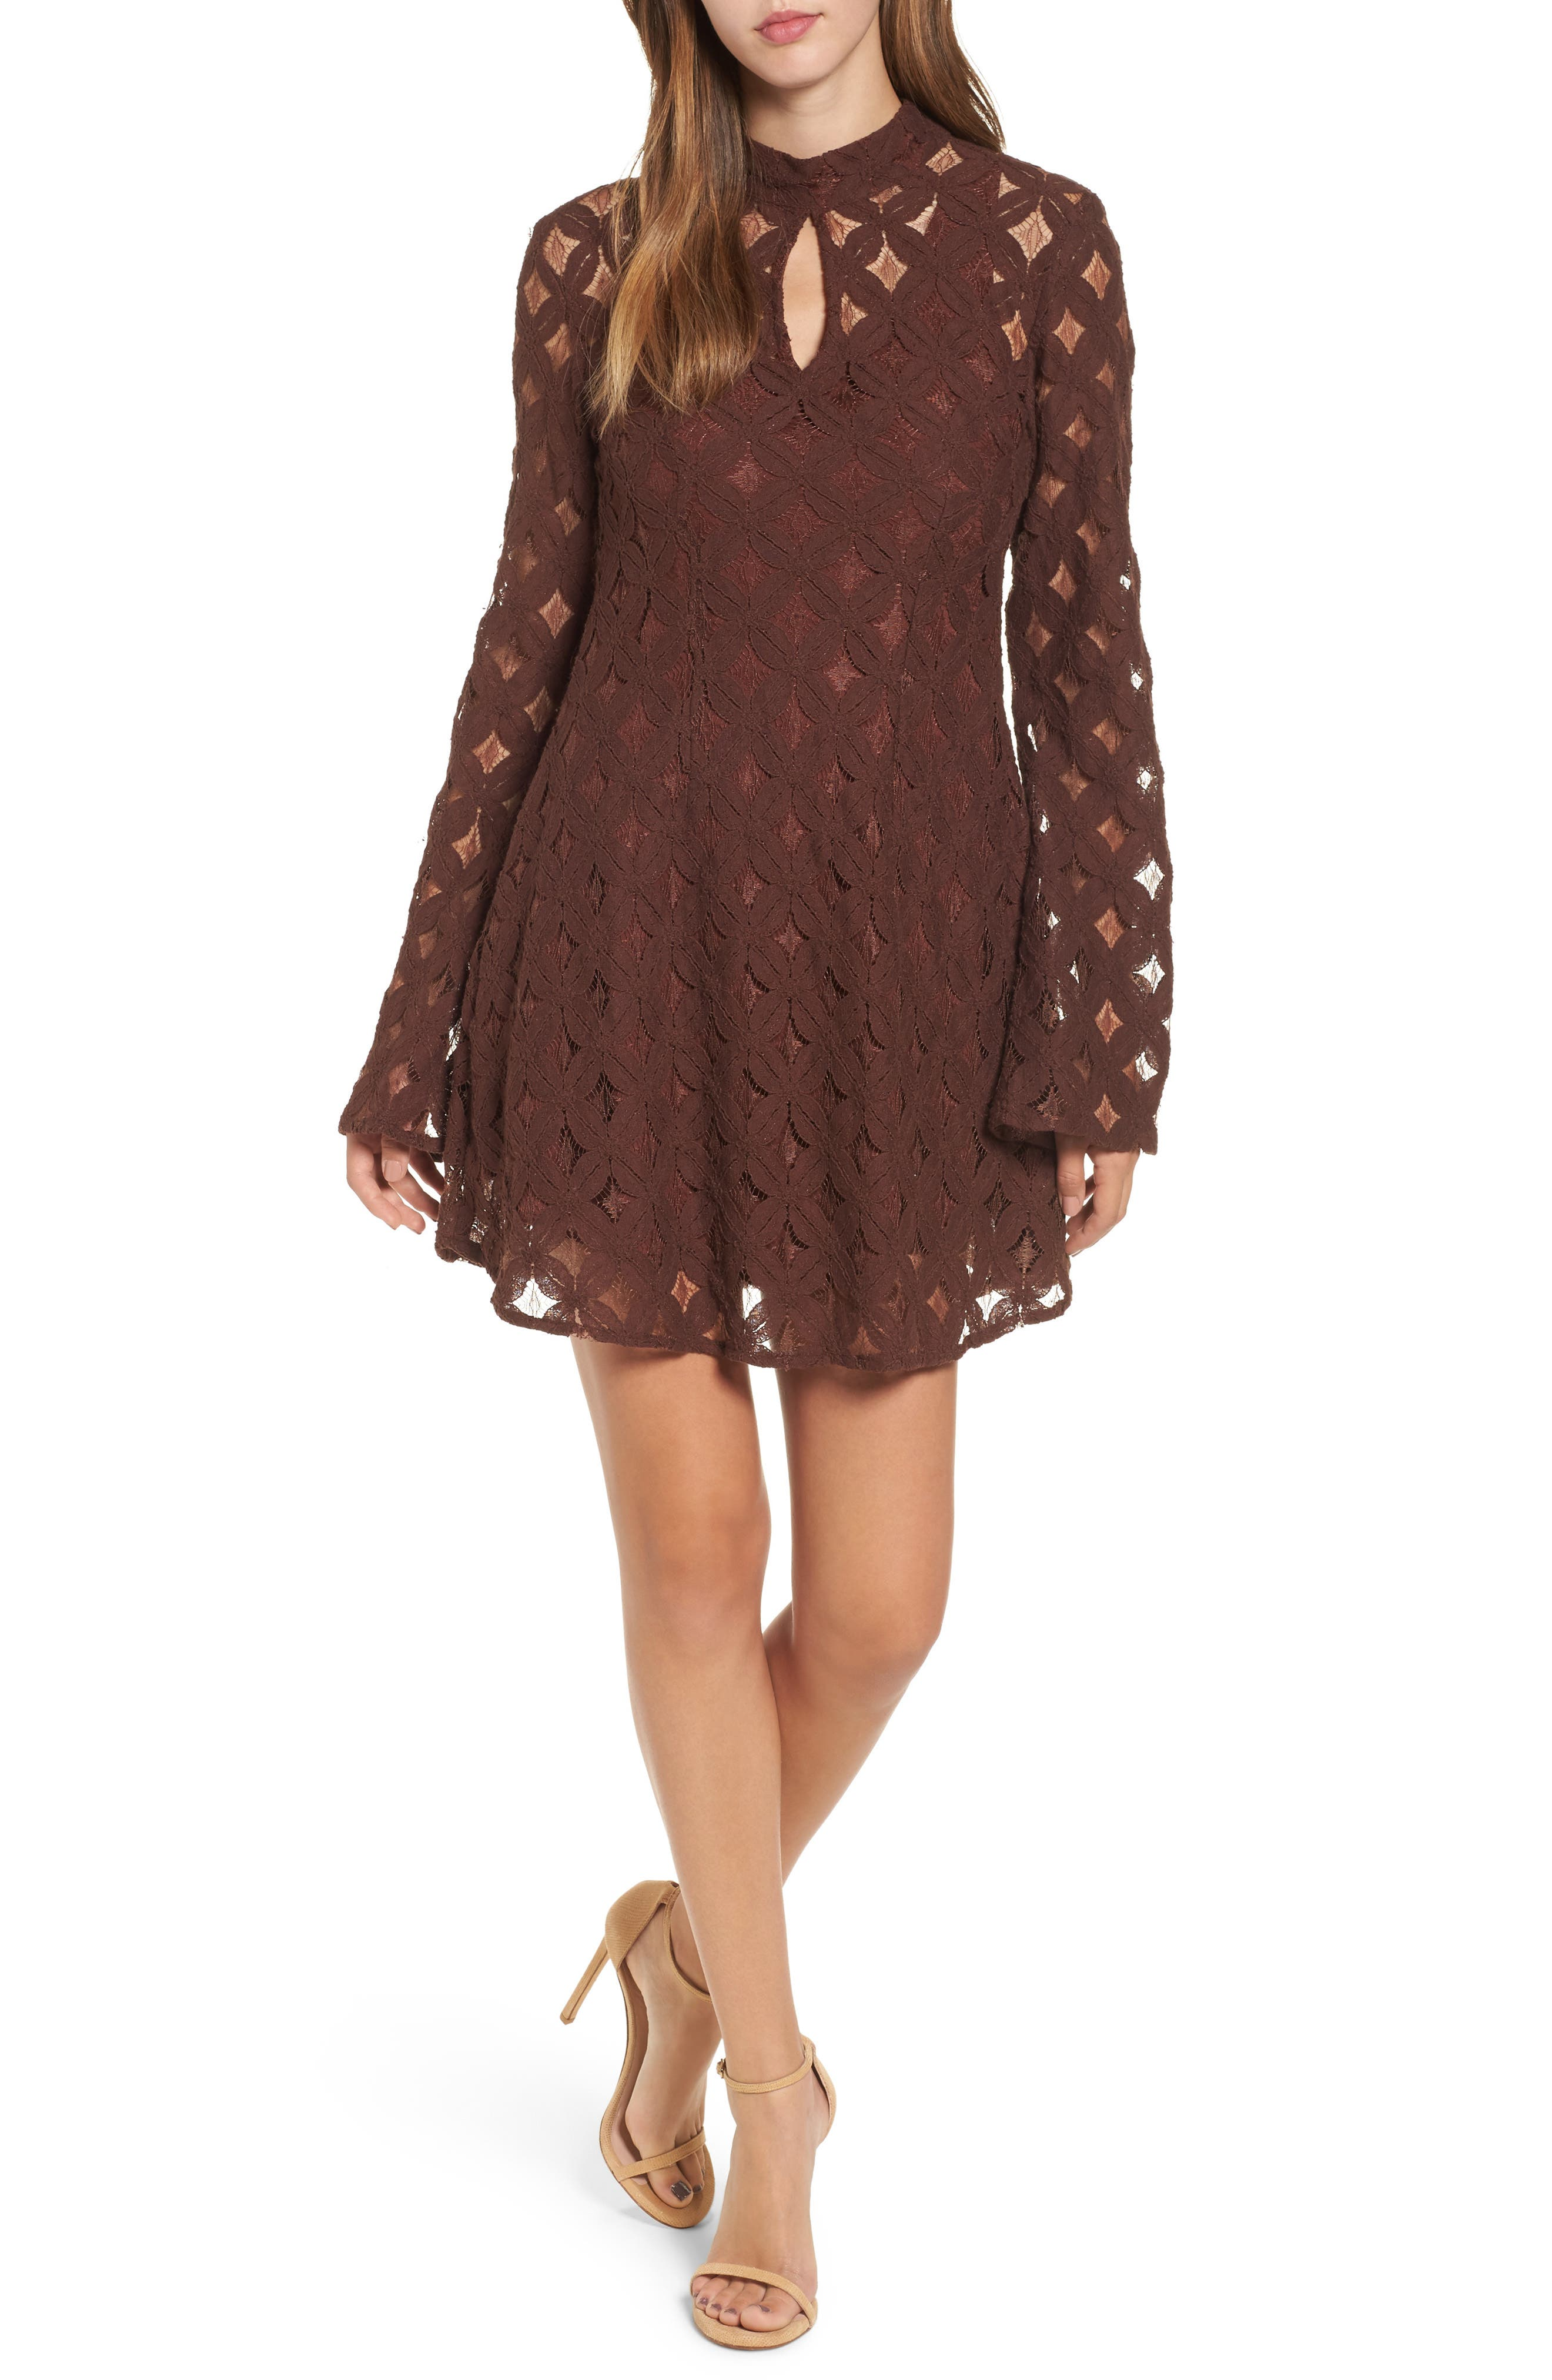 Somedays Lovin Crimson Hearts Lace Dress